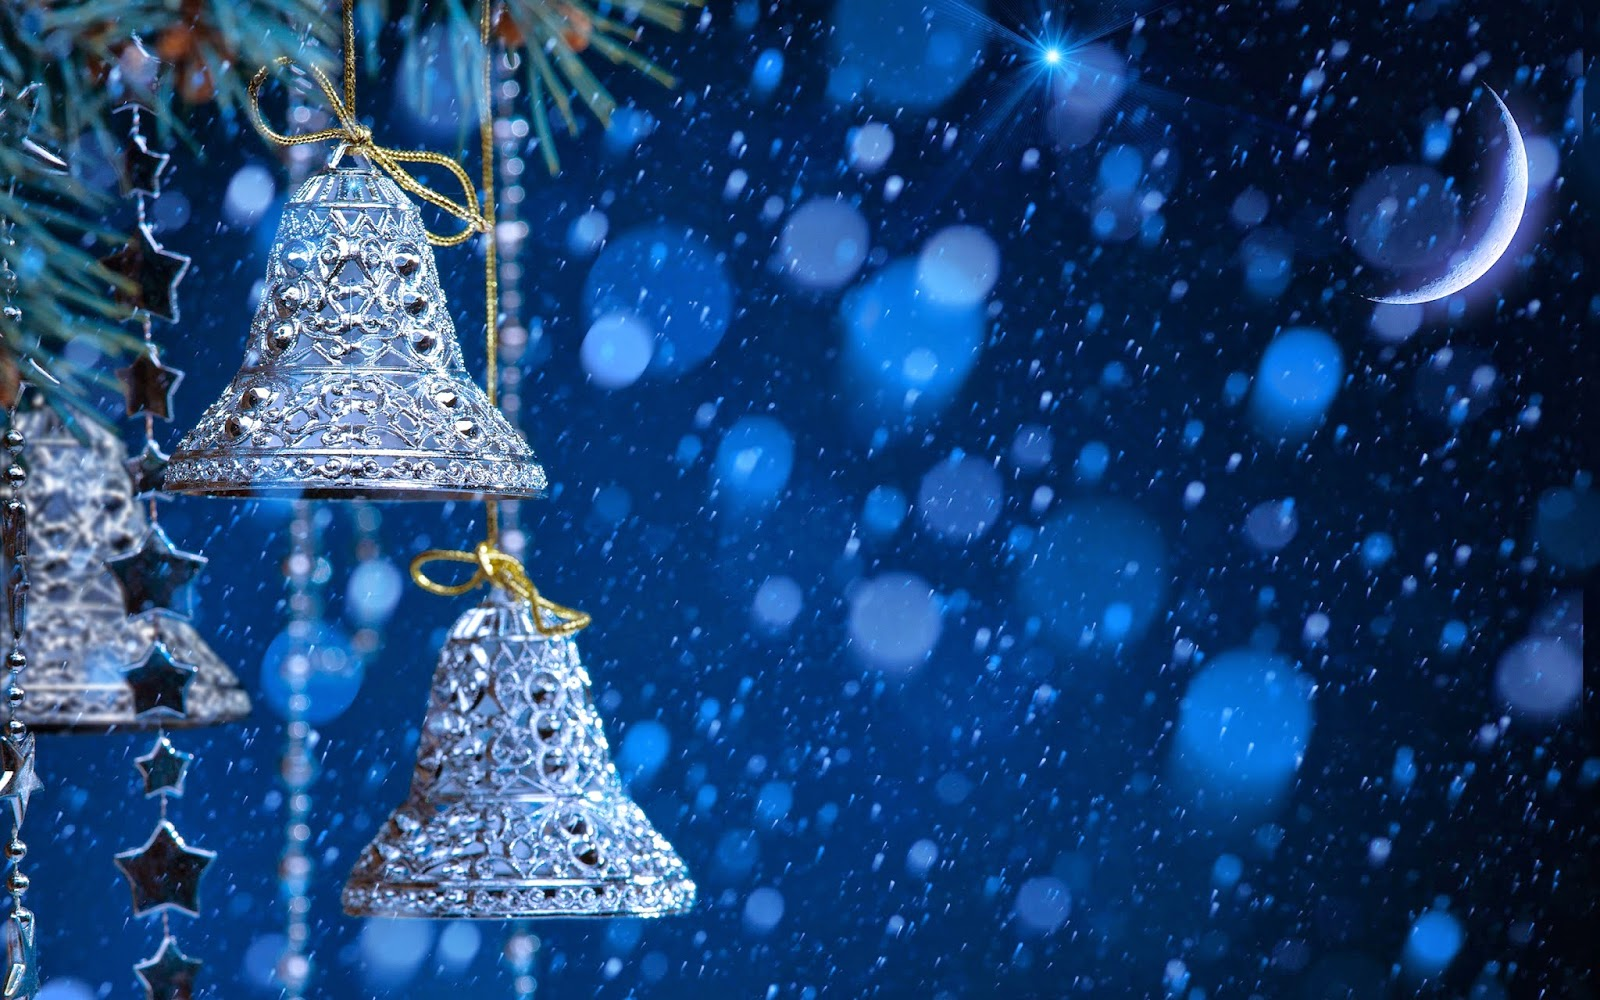 Christmas Background Hd Images.Merry Christmas Jingle Bells Silver With Snow Fall Blue